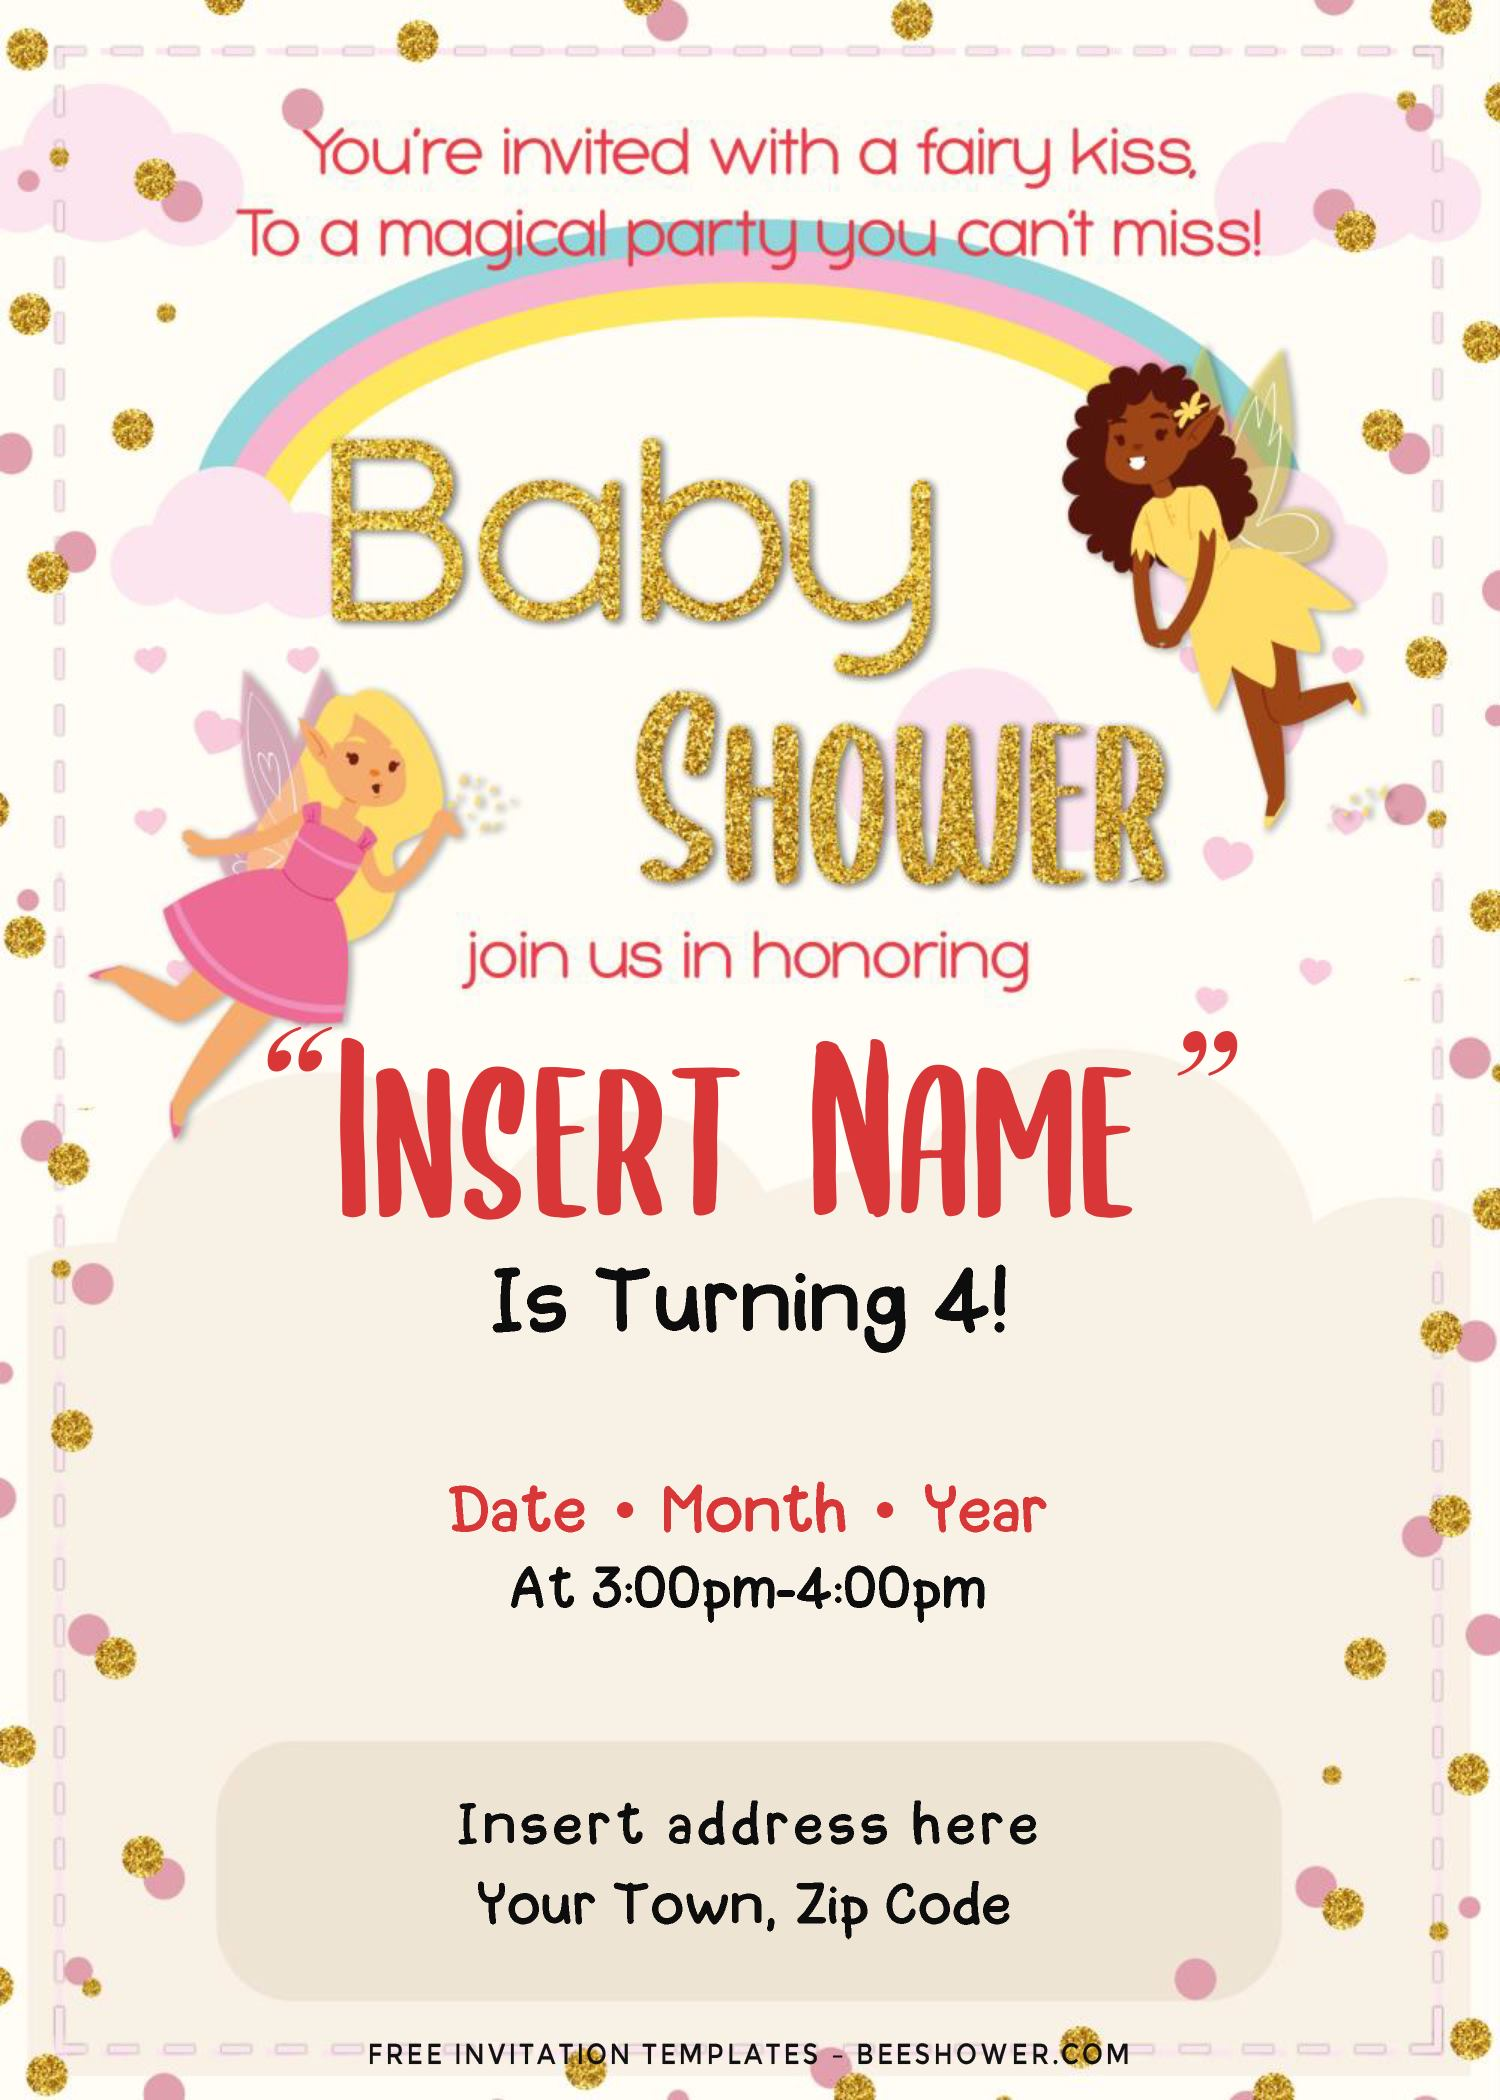 Free Magical Fairy Birthday Invitation Templates For Word